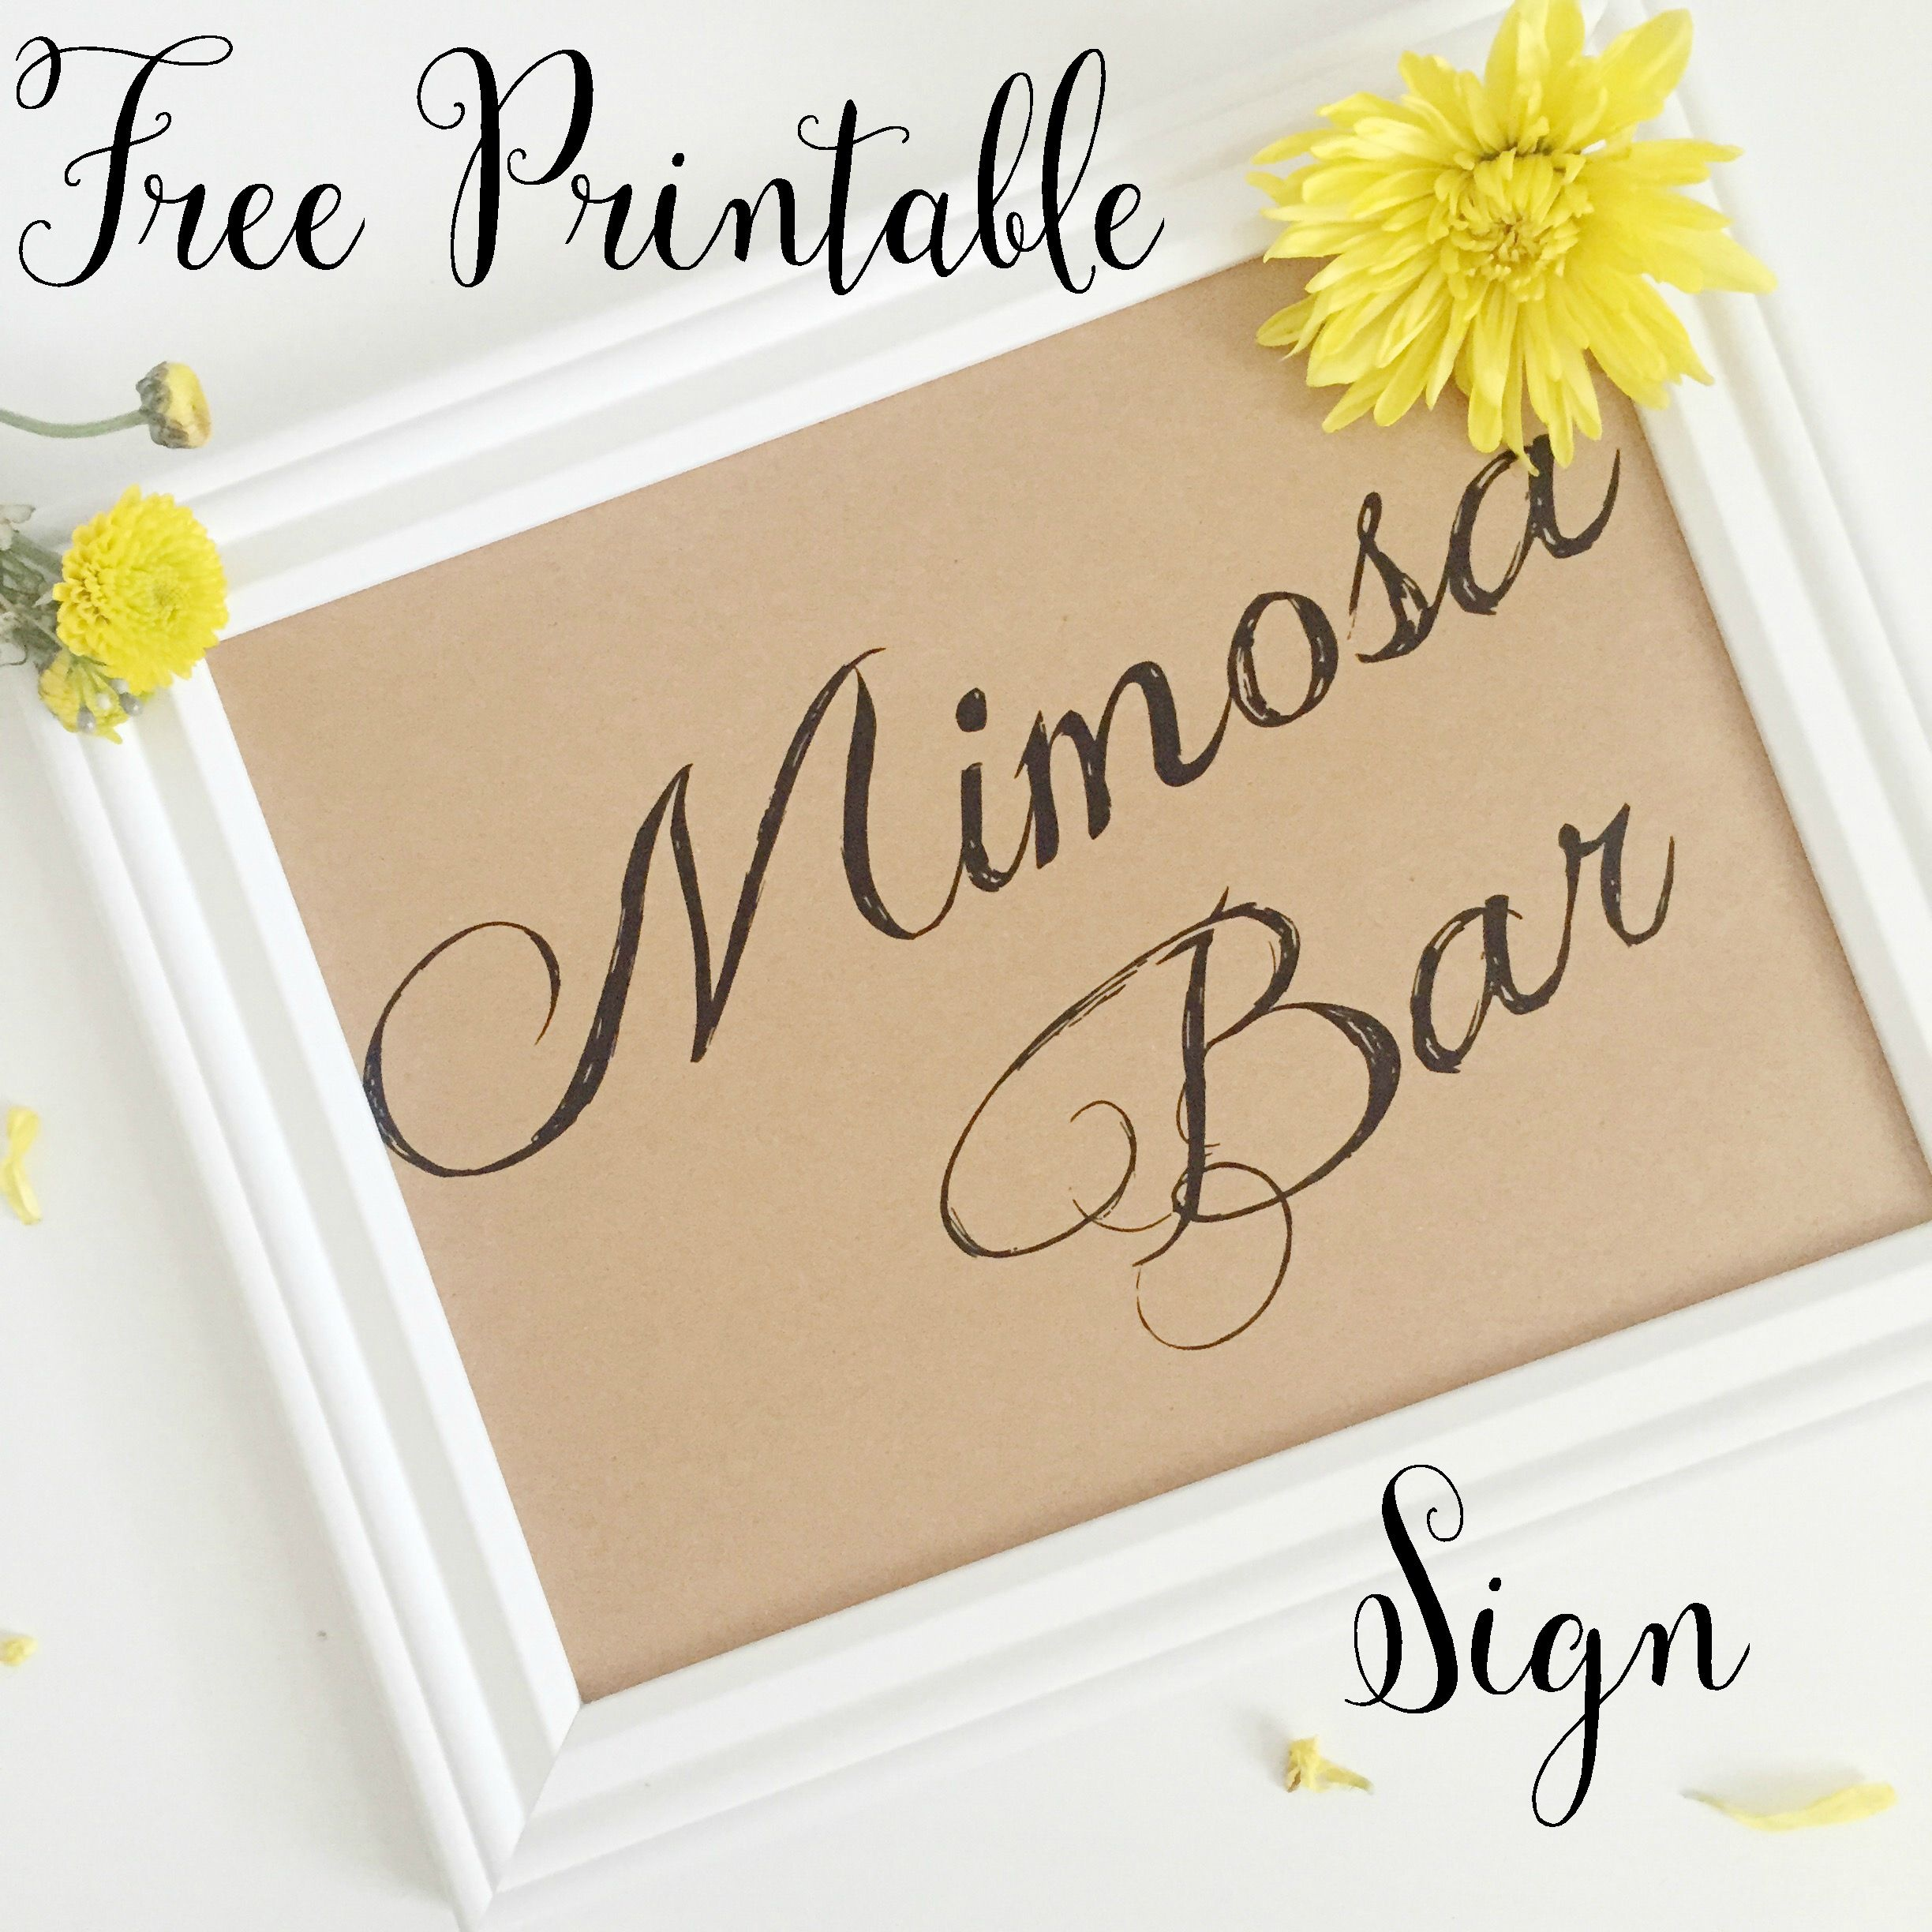 Southern Chic Bridal Shower Free Printable - Fleur De Lis Event - Free Mimosa Bar Printable